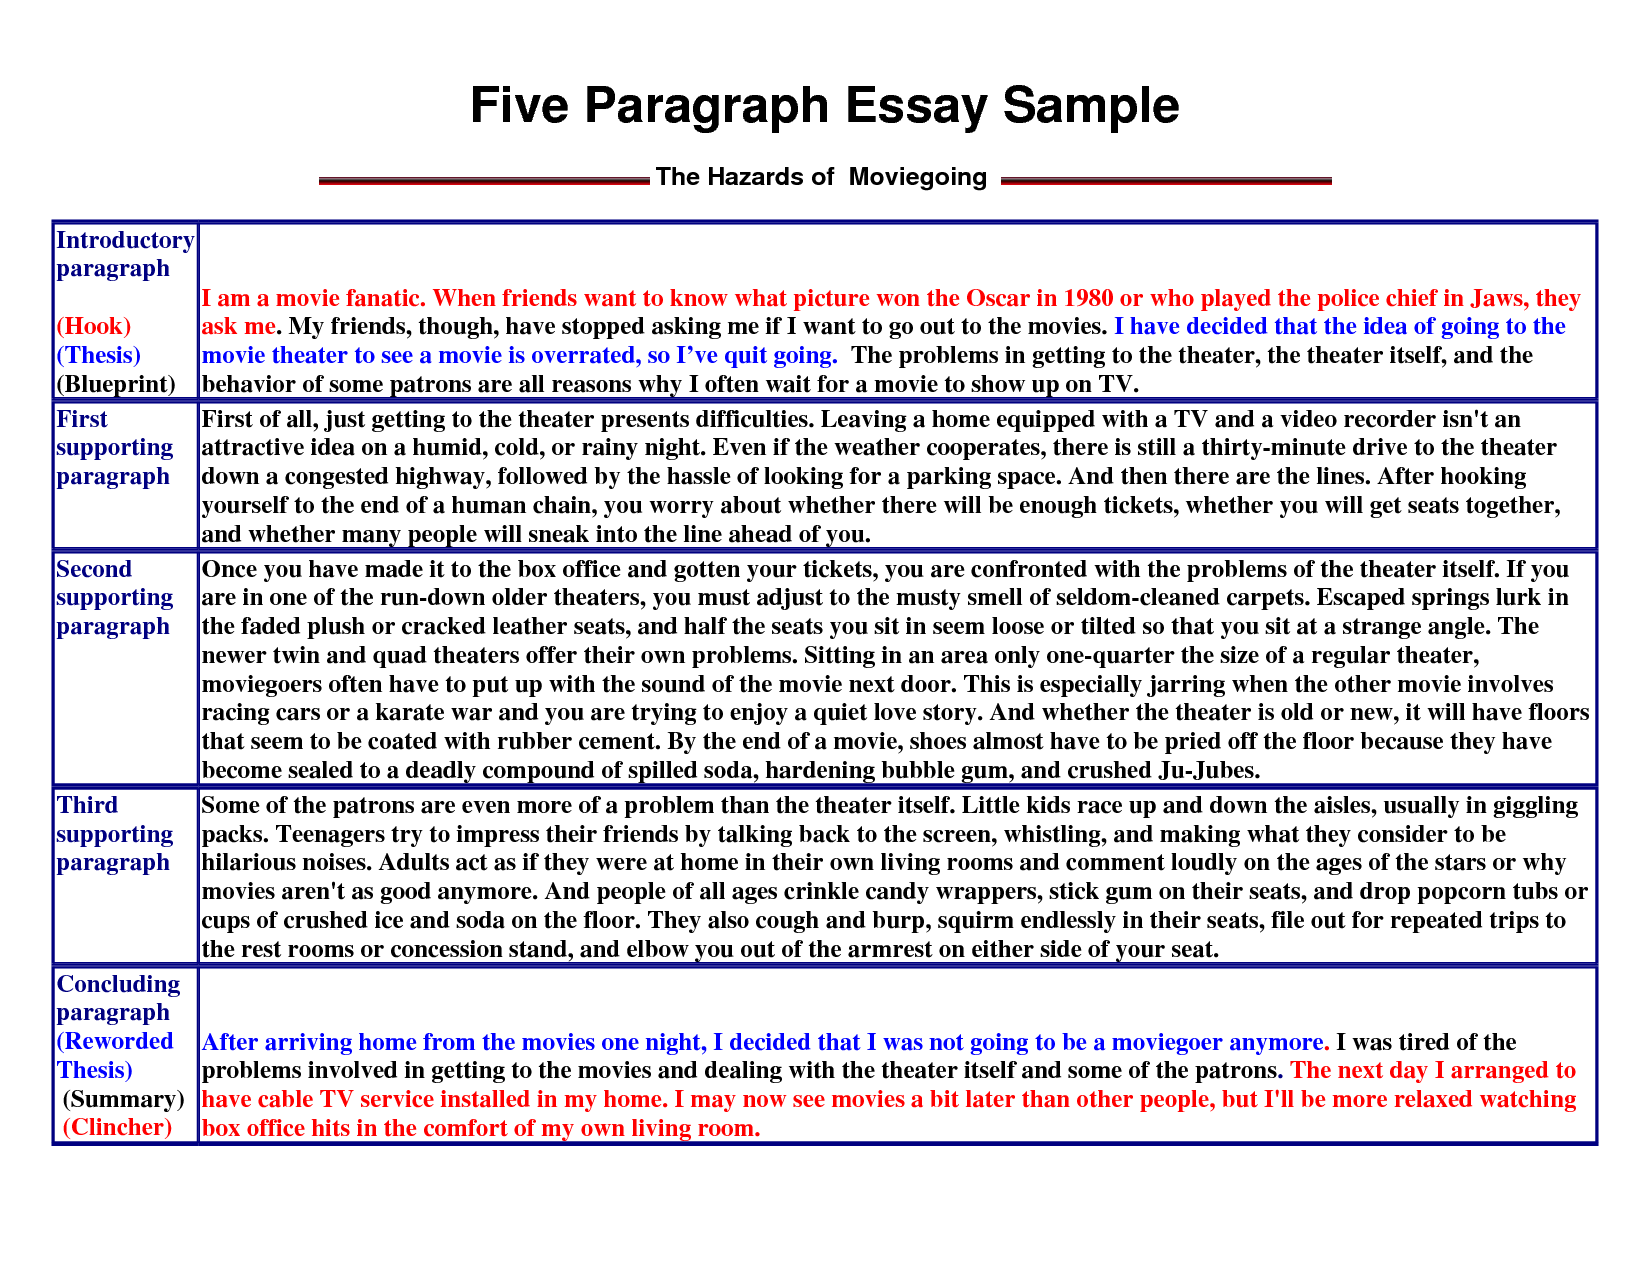 5 paragraph essay prompts for high school